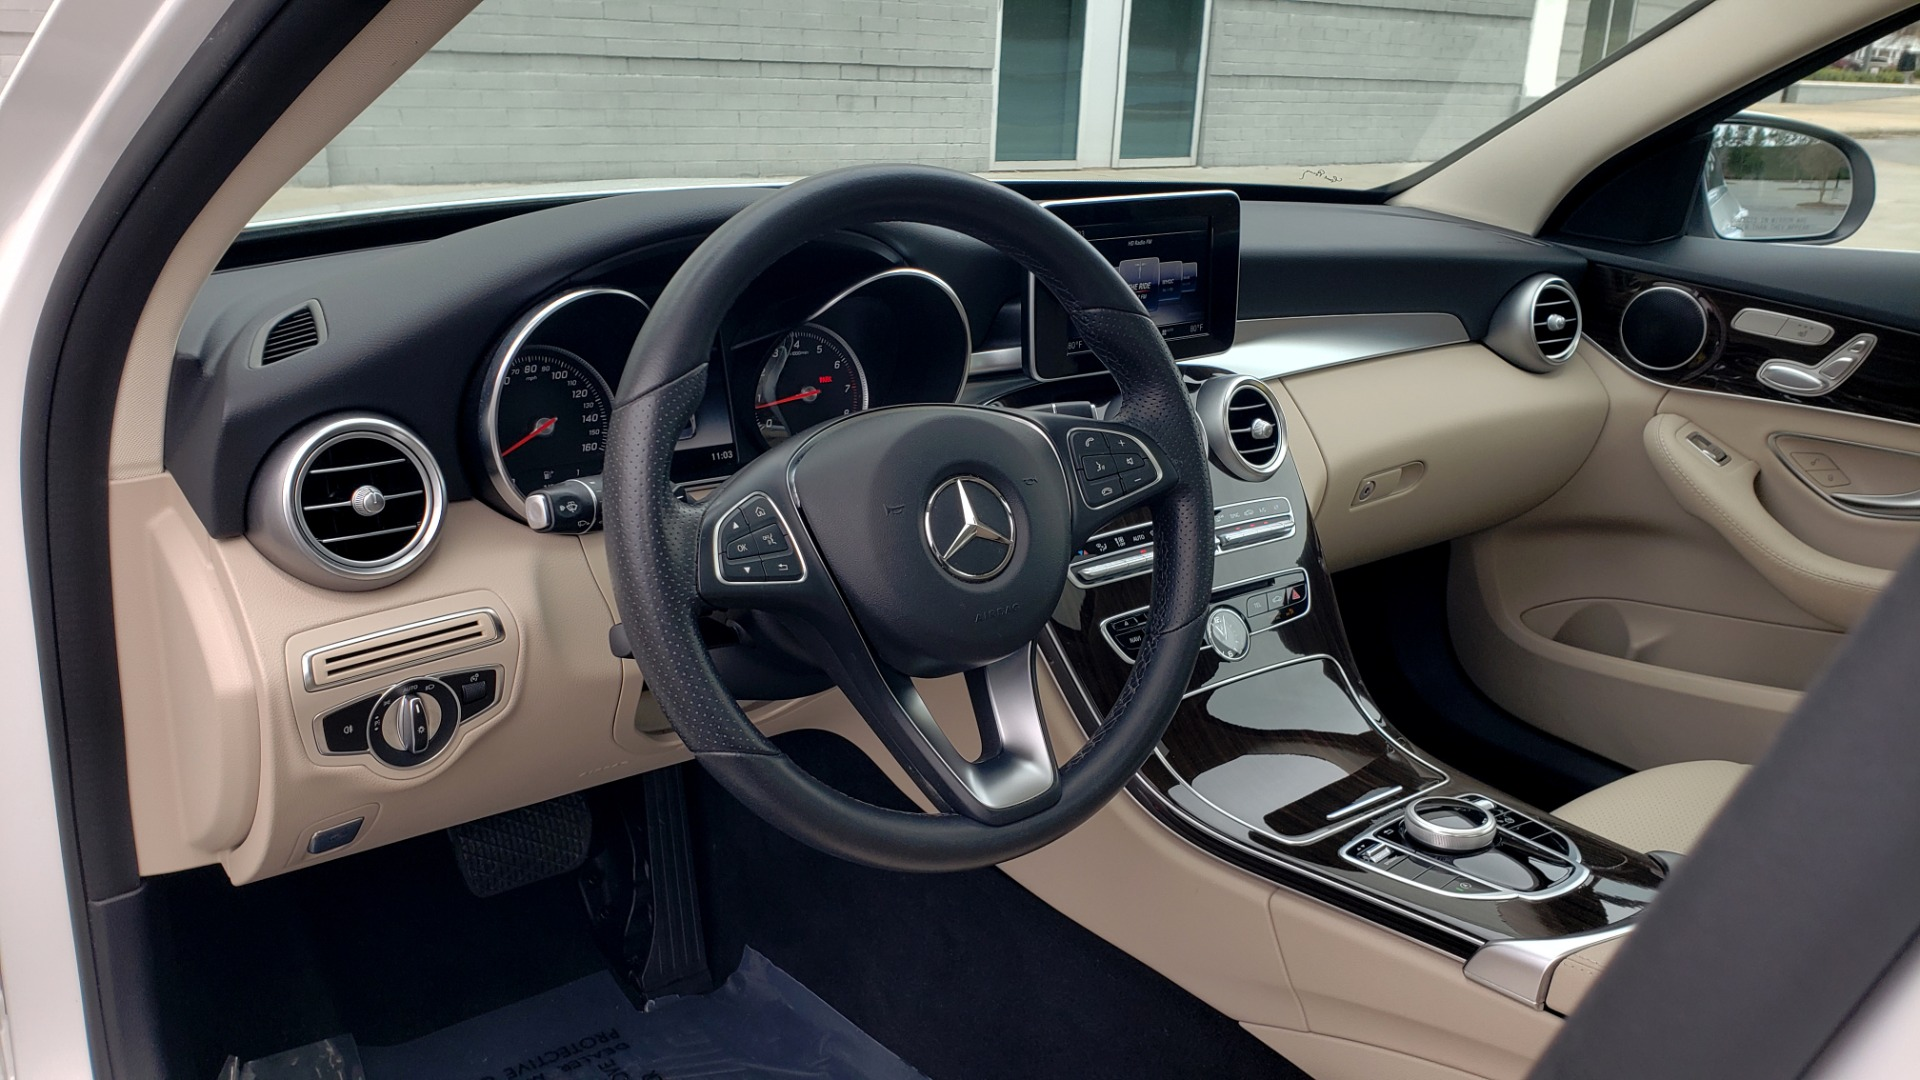 Used 2018 Mercedes-Benz C-CLASS C 300 PREMIUM / NAV / HTD STS / APPLE CARPLAY / REARVIEW for sale Sold at Formula Imports in Charlotte NC 28227 35